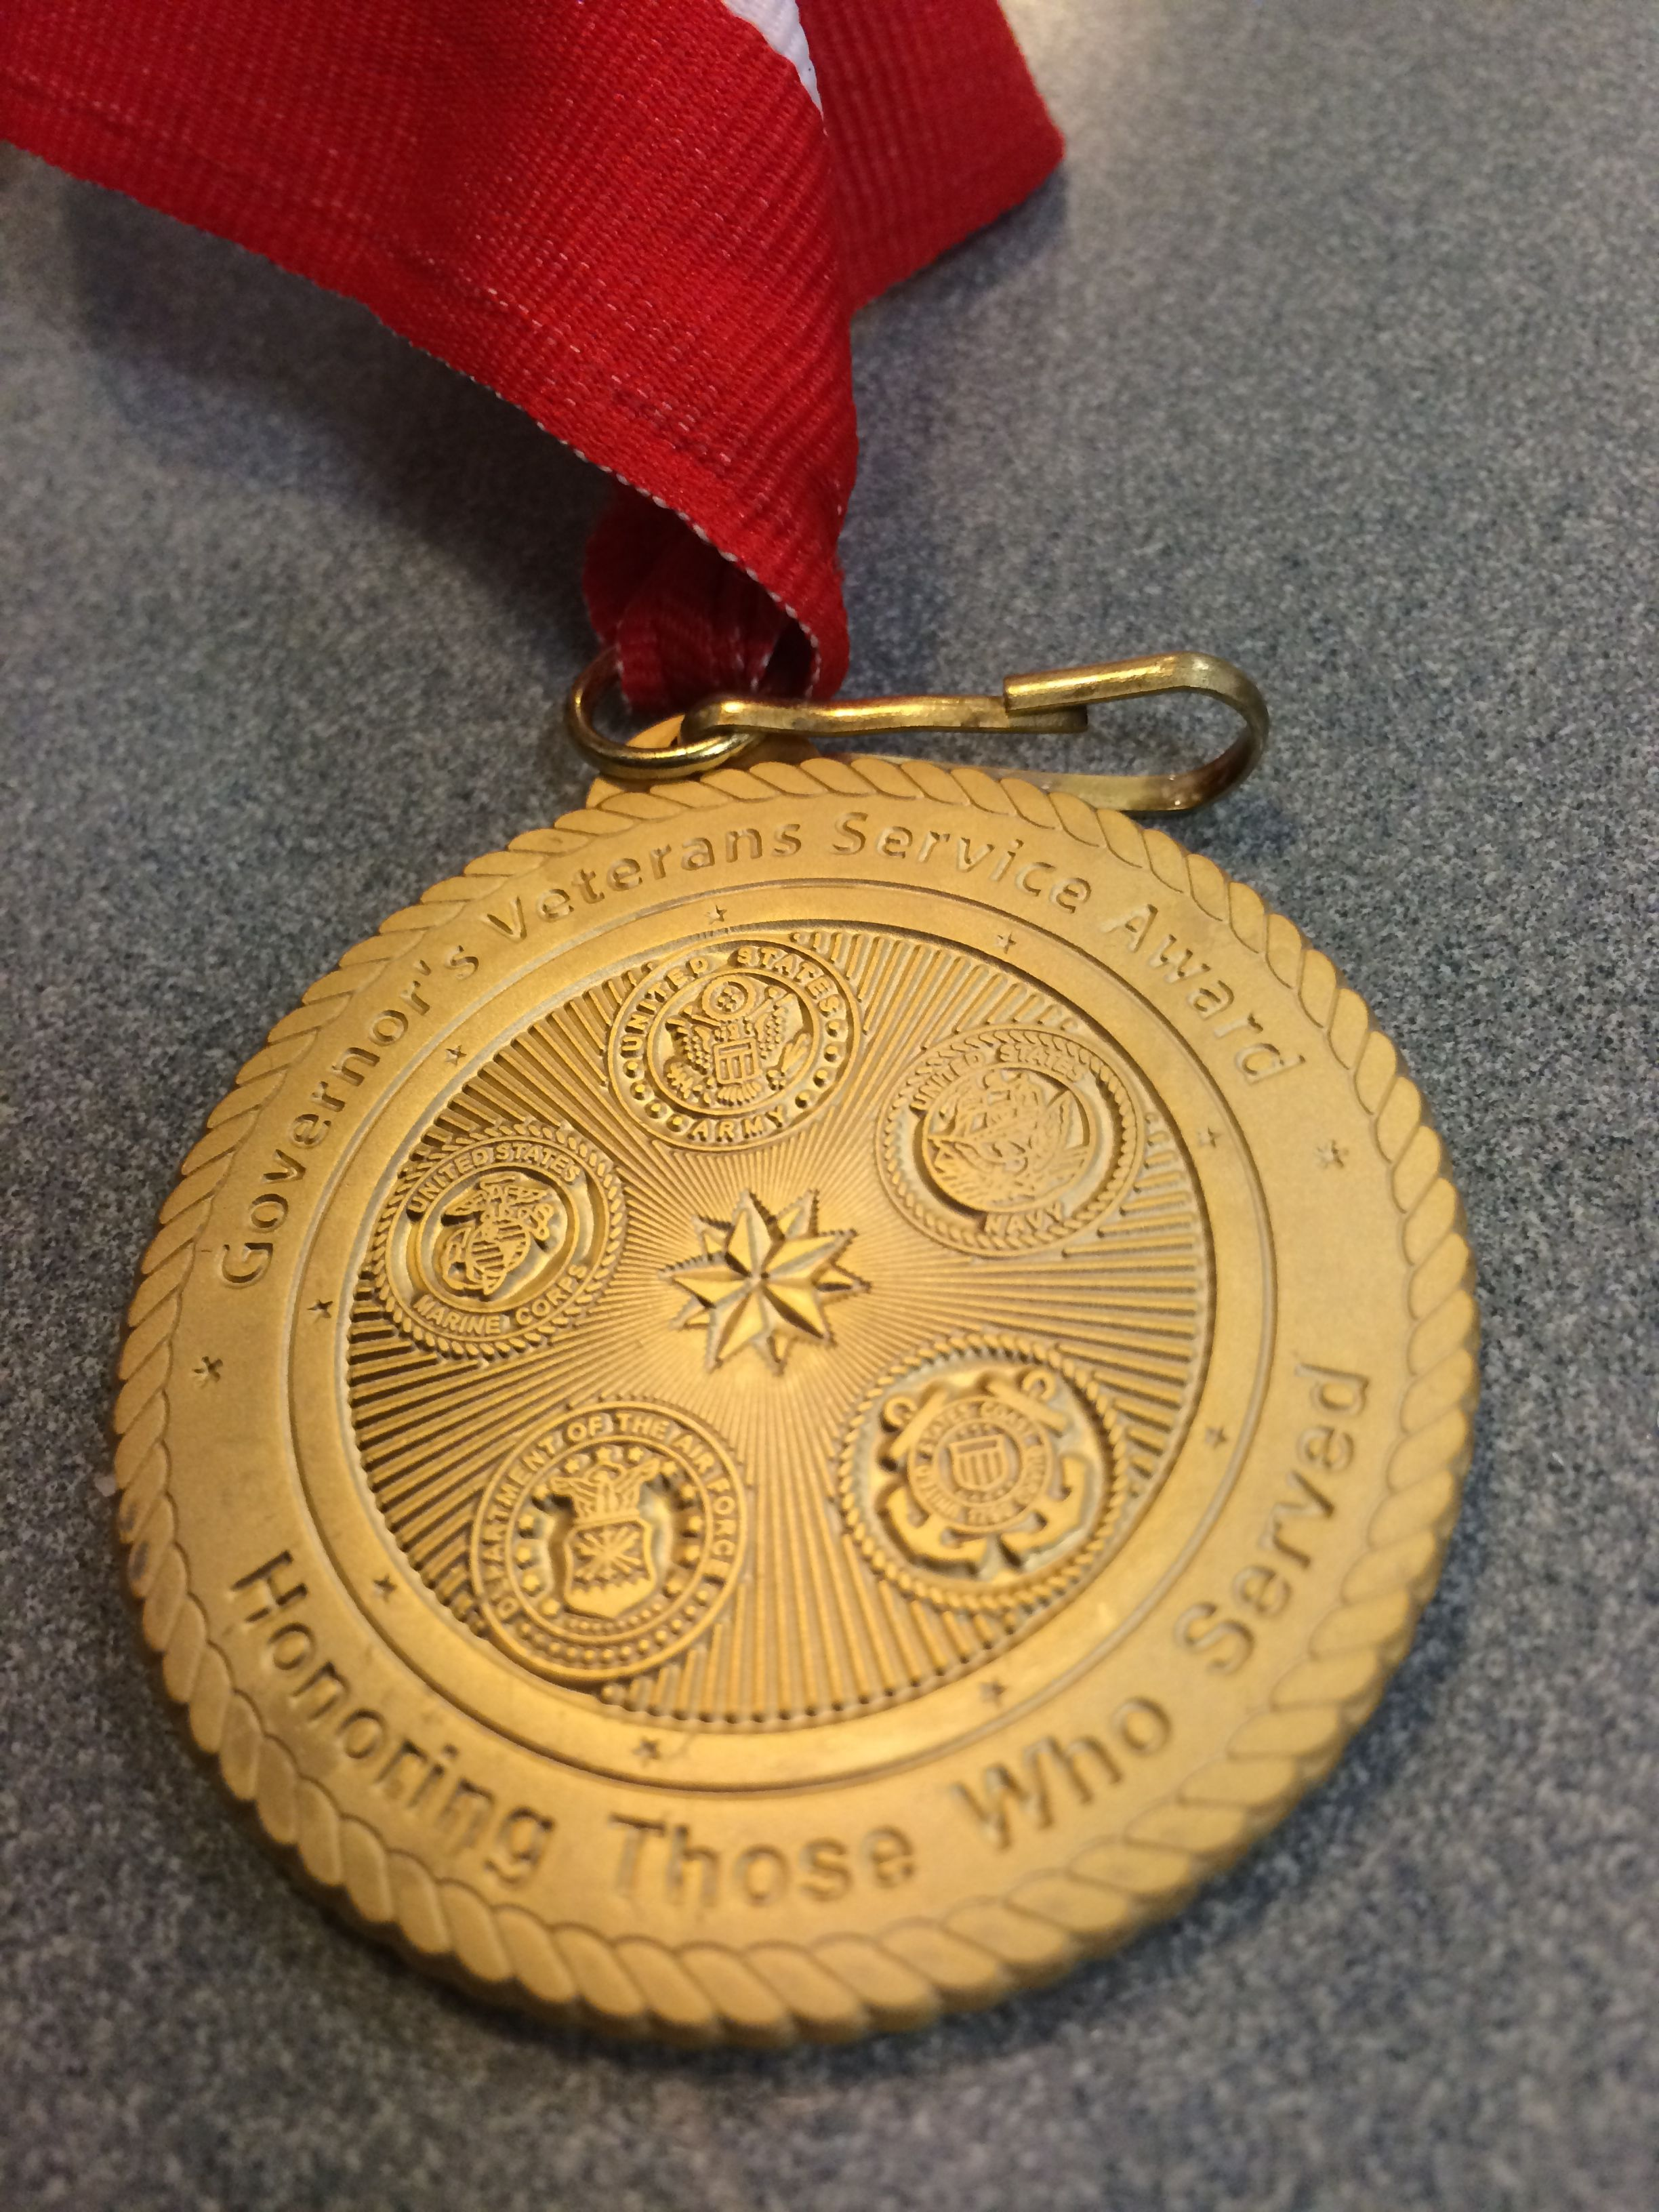 This side of the medal  shows the five branches of the military